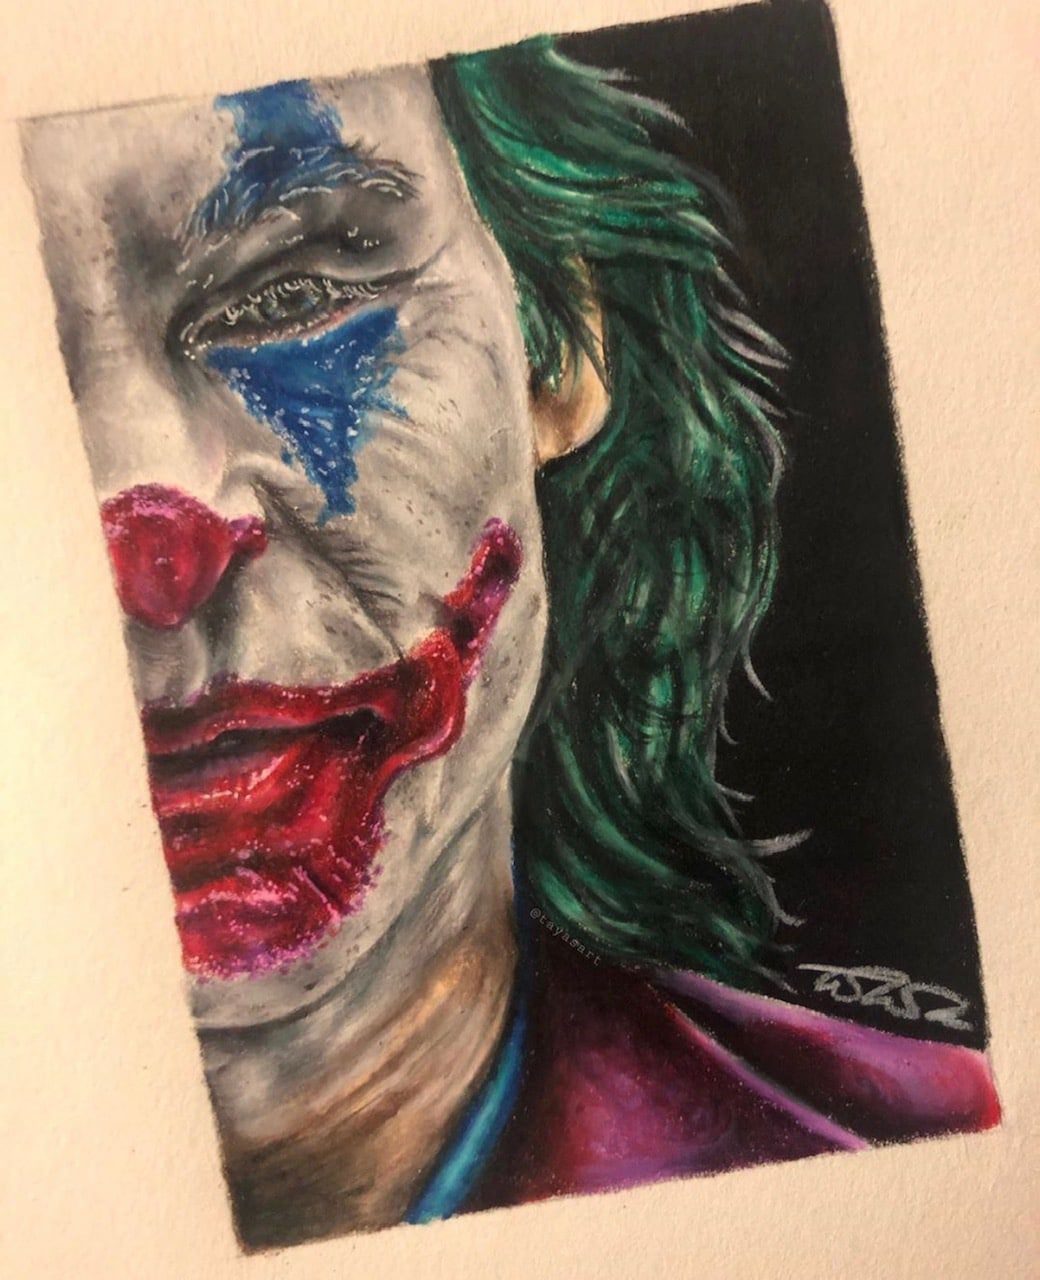 Taya Morgan Moore Artist The Joker